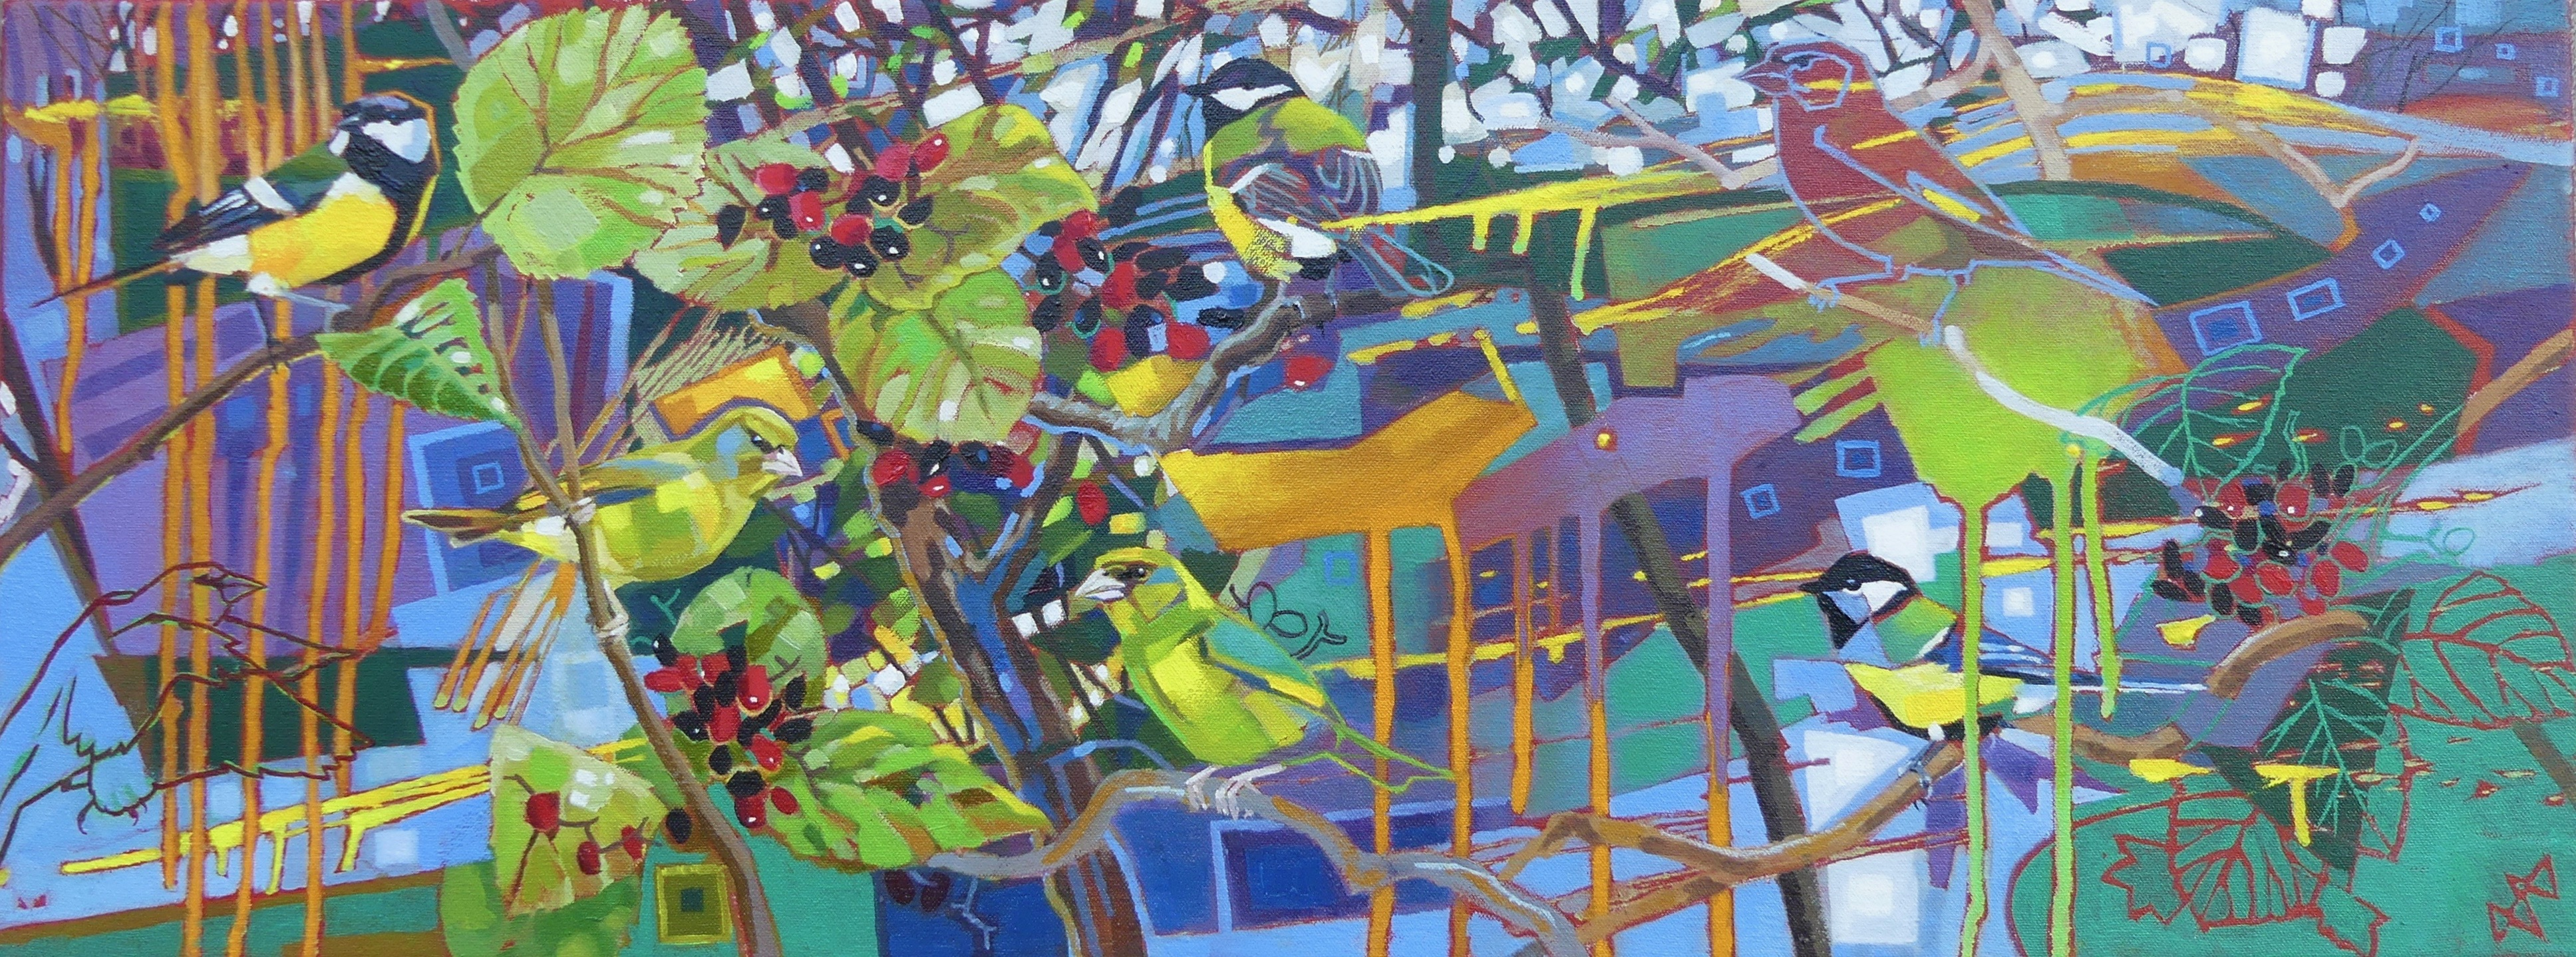 <p>Greenfinches, Great Tits and Wayfaring Tree by Brin Edwards SWLA</p>